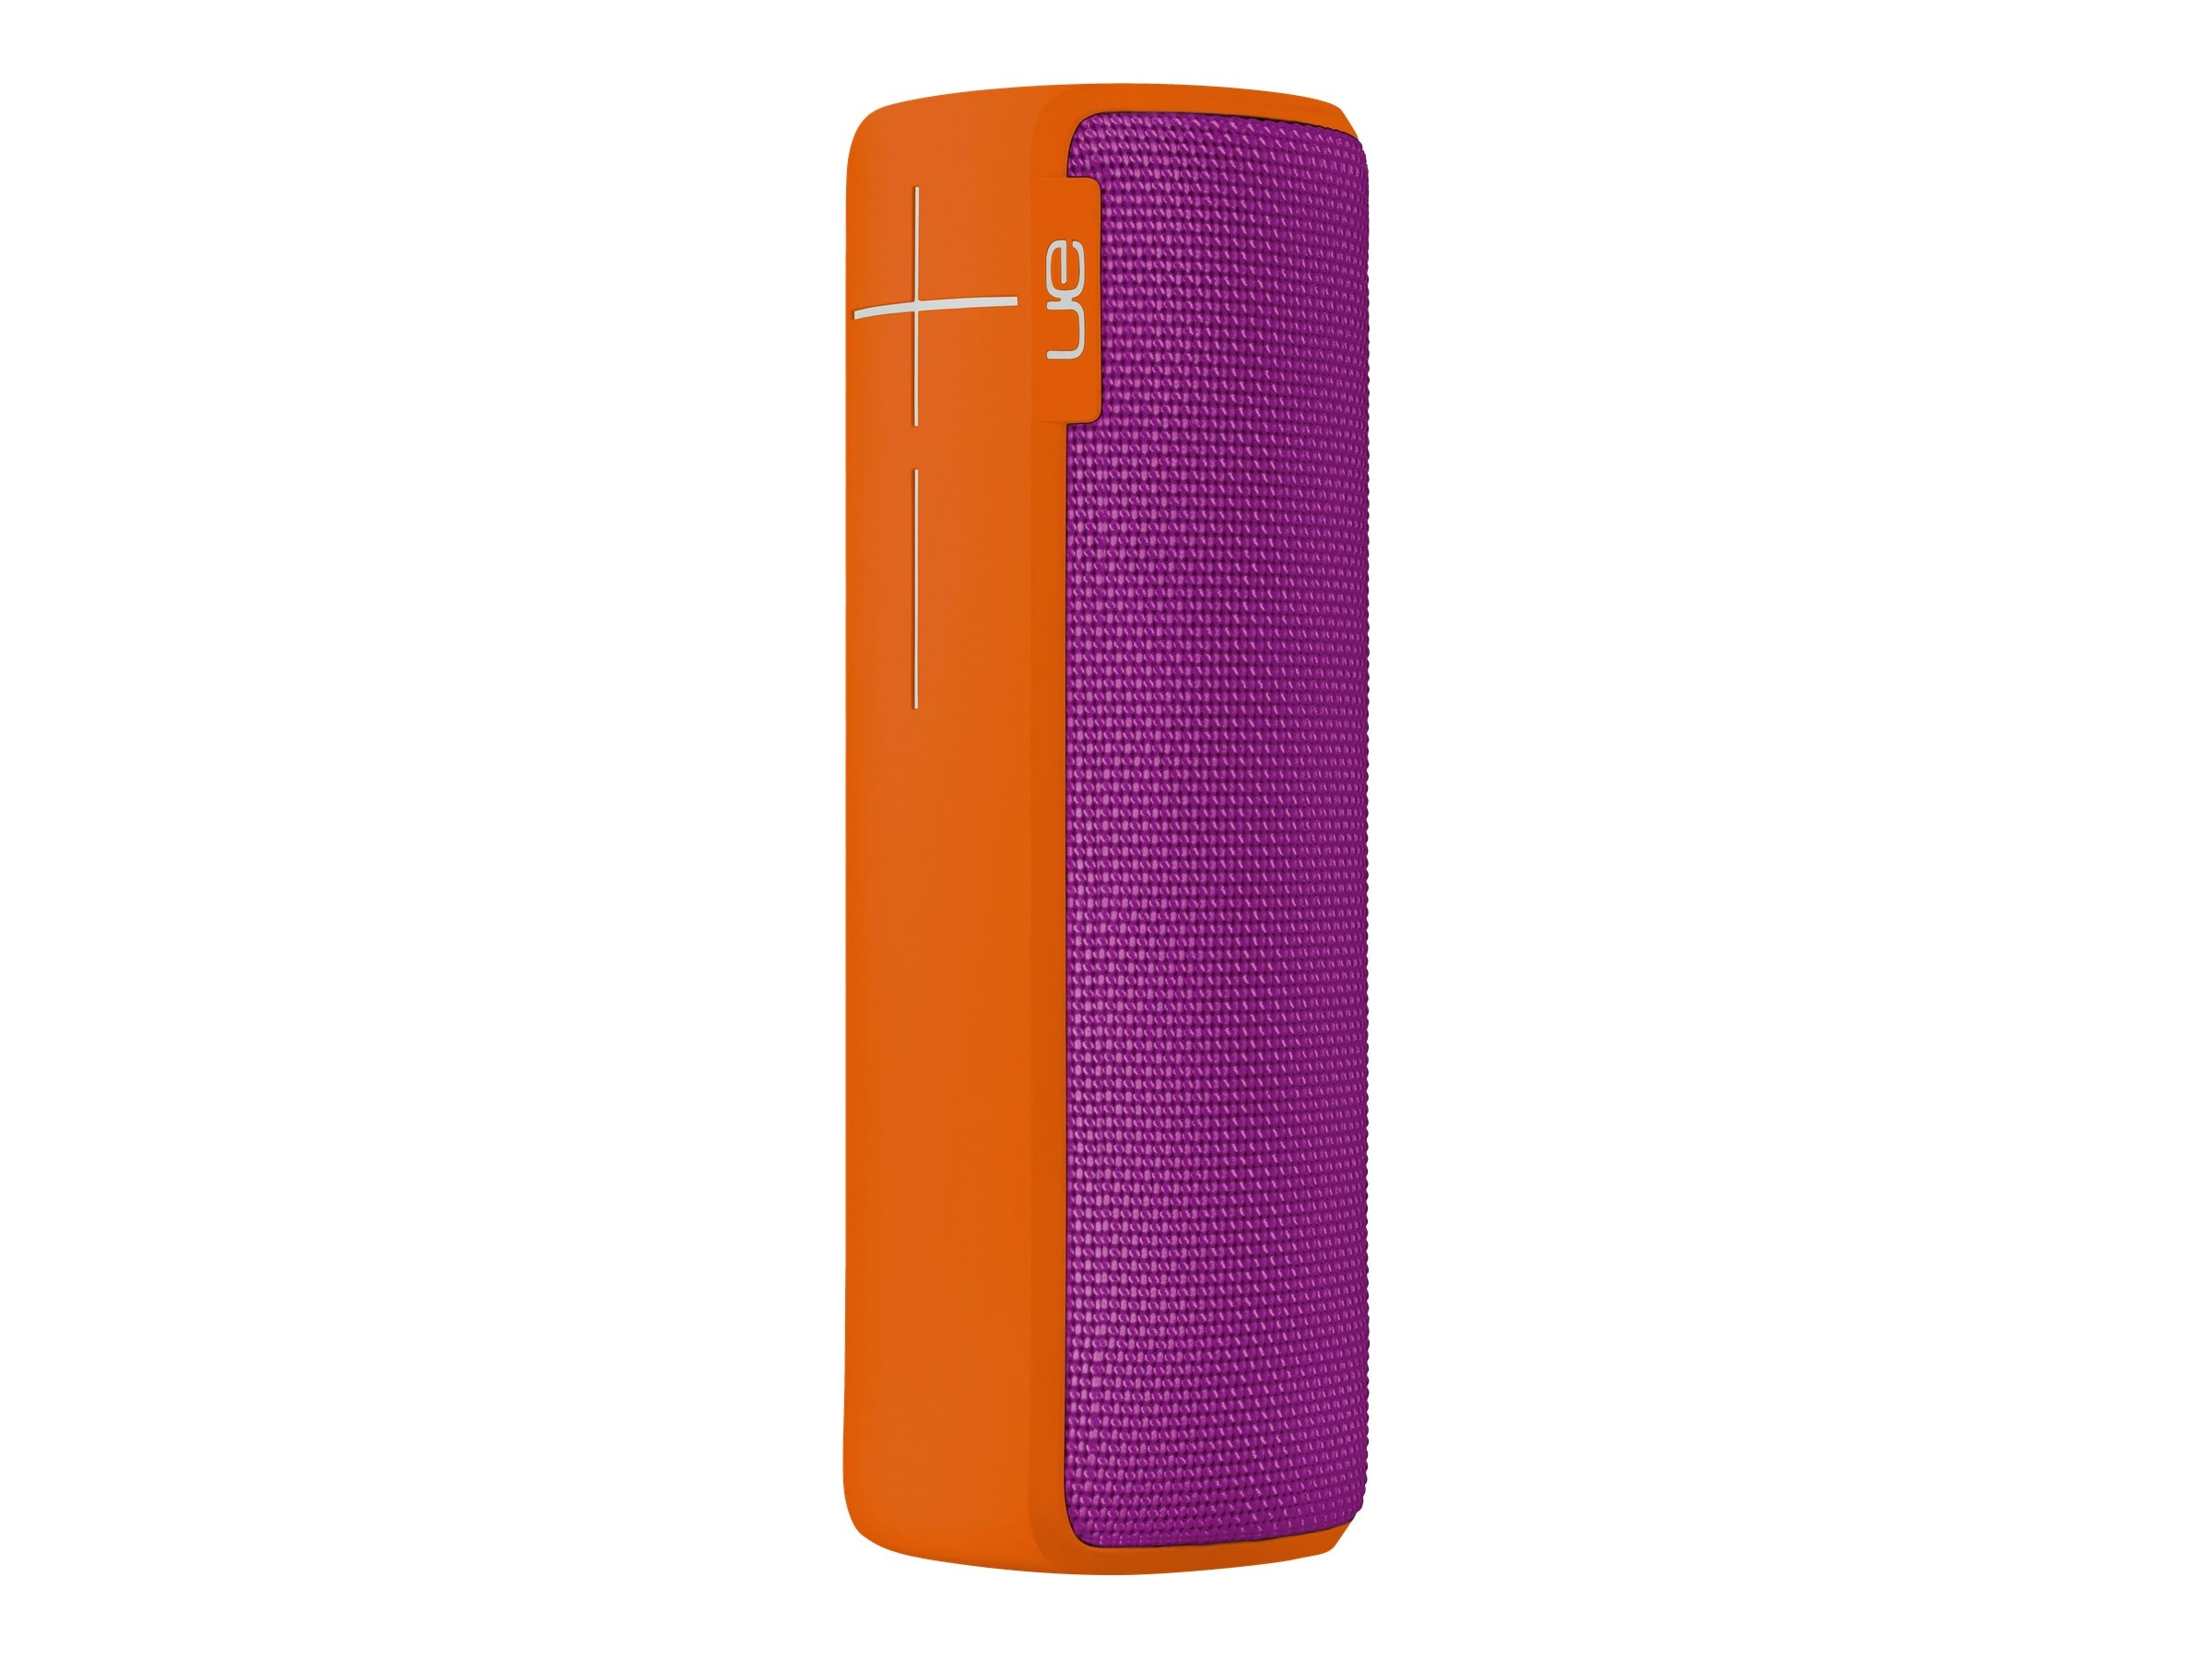 Logitech UE Boom 2 Wireless Speaker, Tropical, 984-000553, 30971019, Speakers - Audio